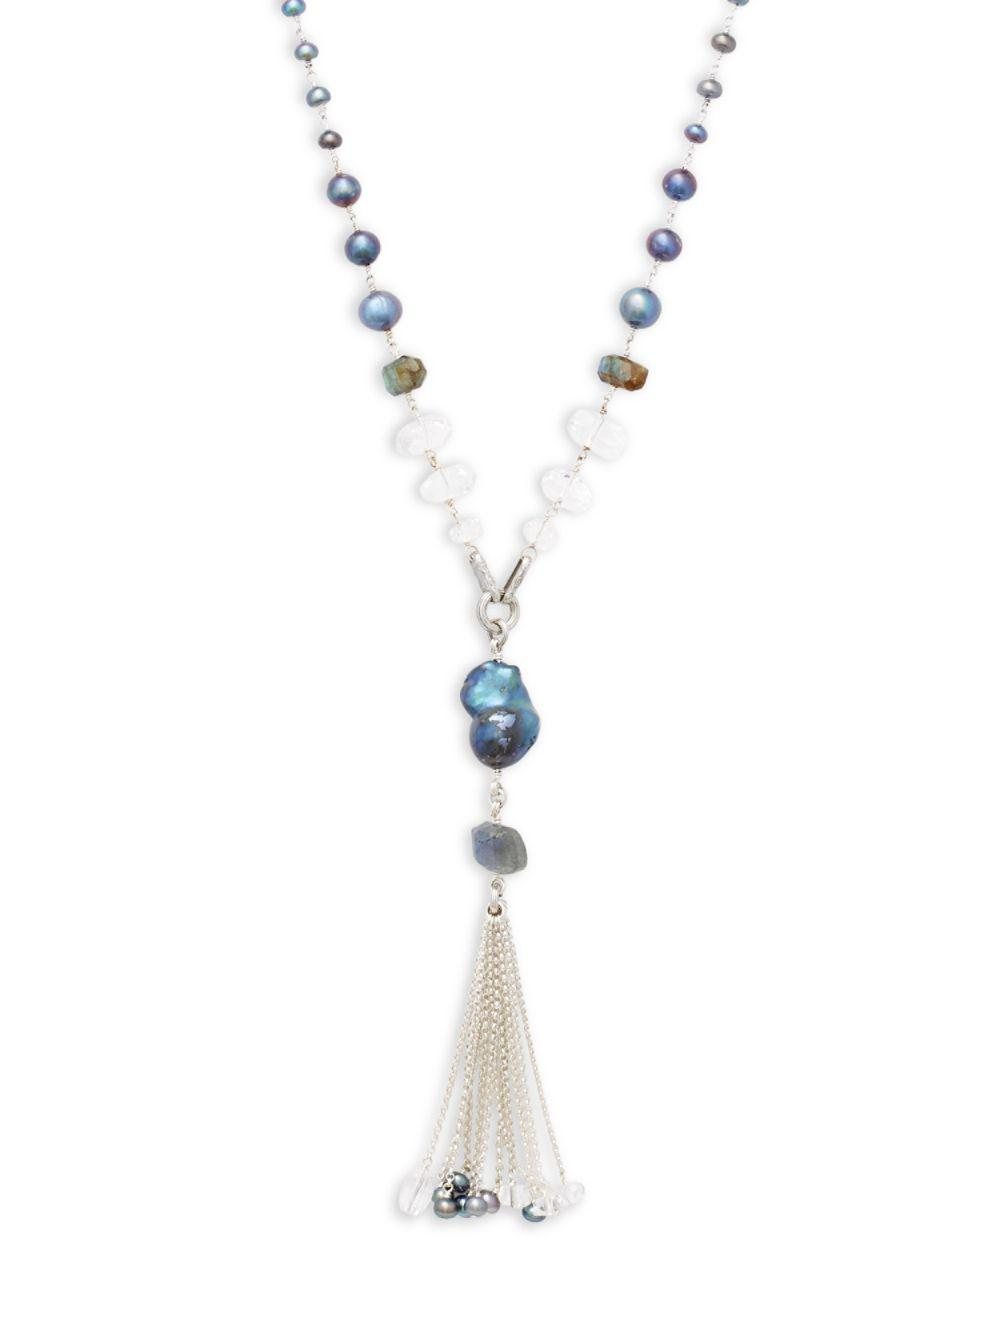 Stephen Dweck Labradorite & Quartz Tassel Chain Necklace bvGuaUP9lU